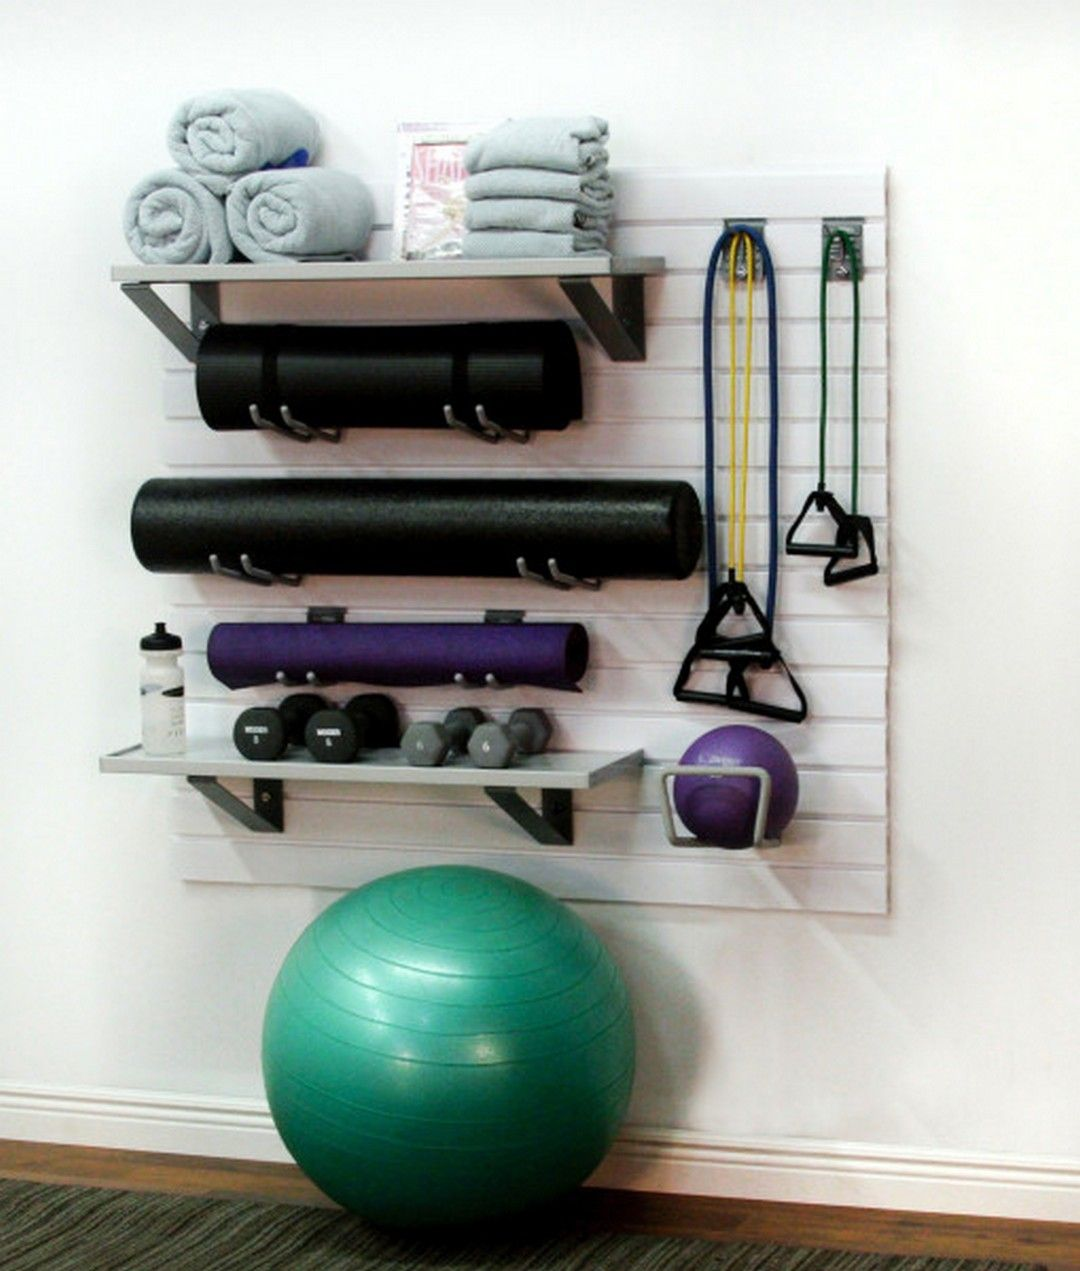 Home Gym Decorating Ideas Photos Part - 23: 20 Small Space Home Gym Decorating Ideas